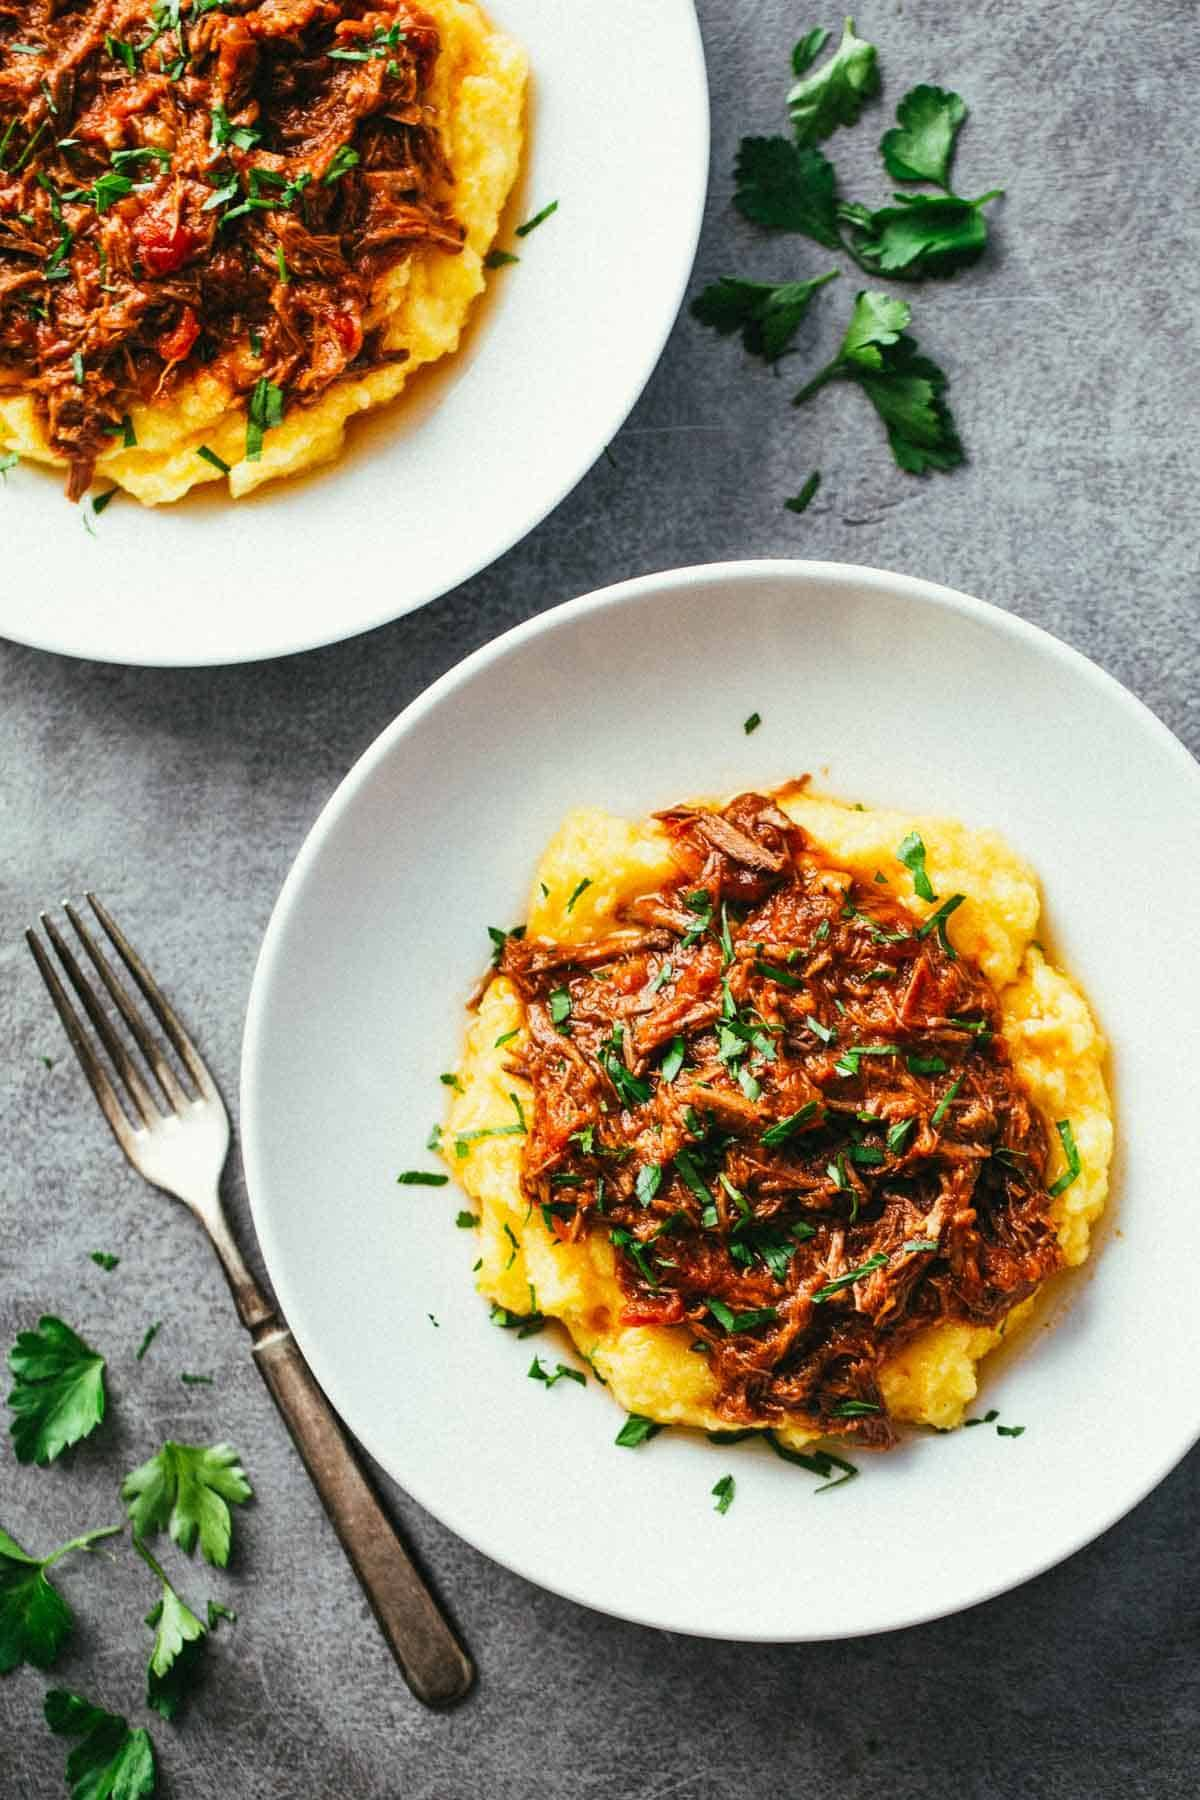 Crockpot Braised Beef Ragu with Polenta on two white plates.